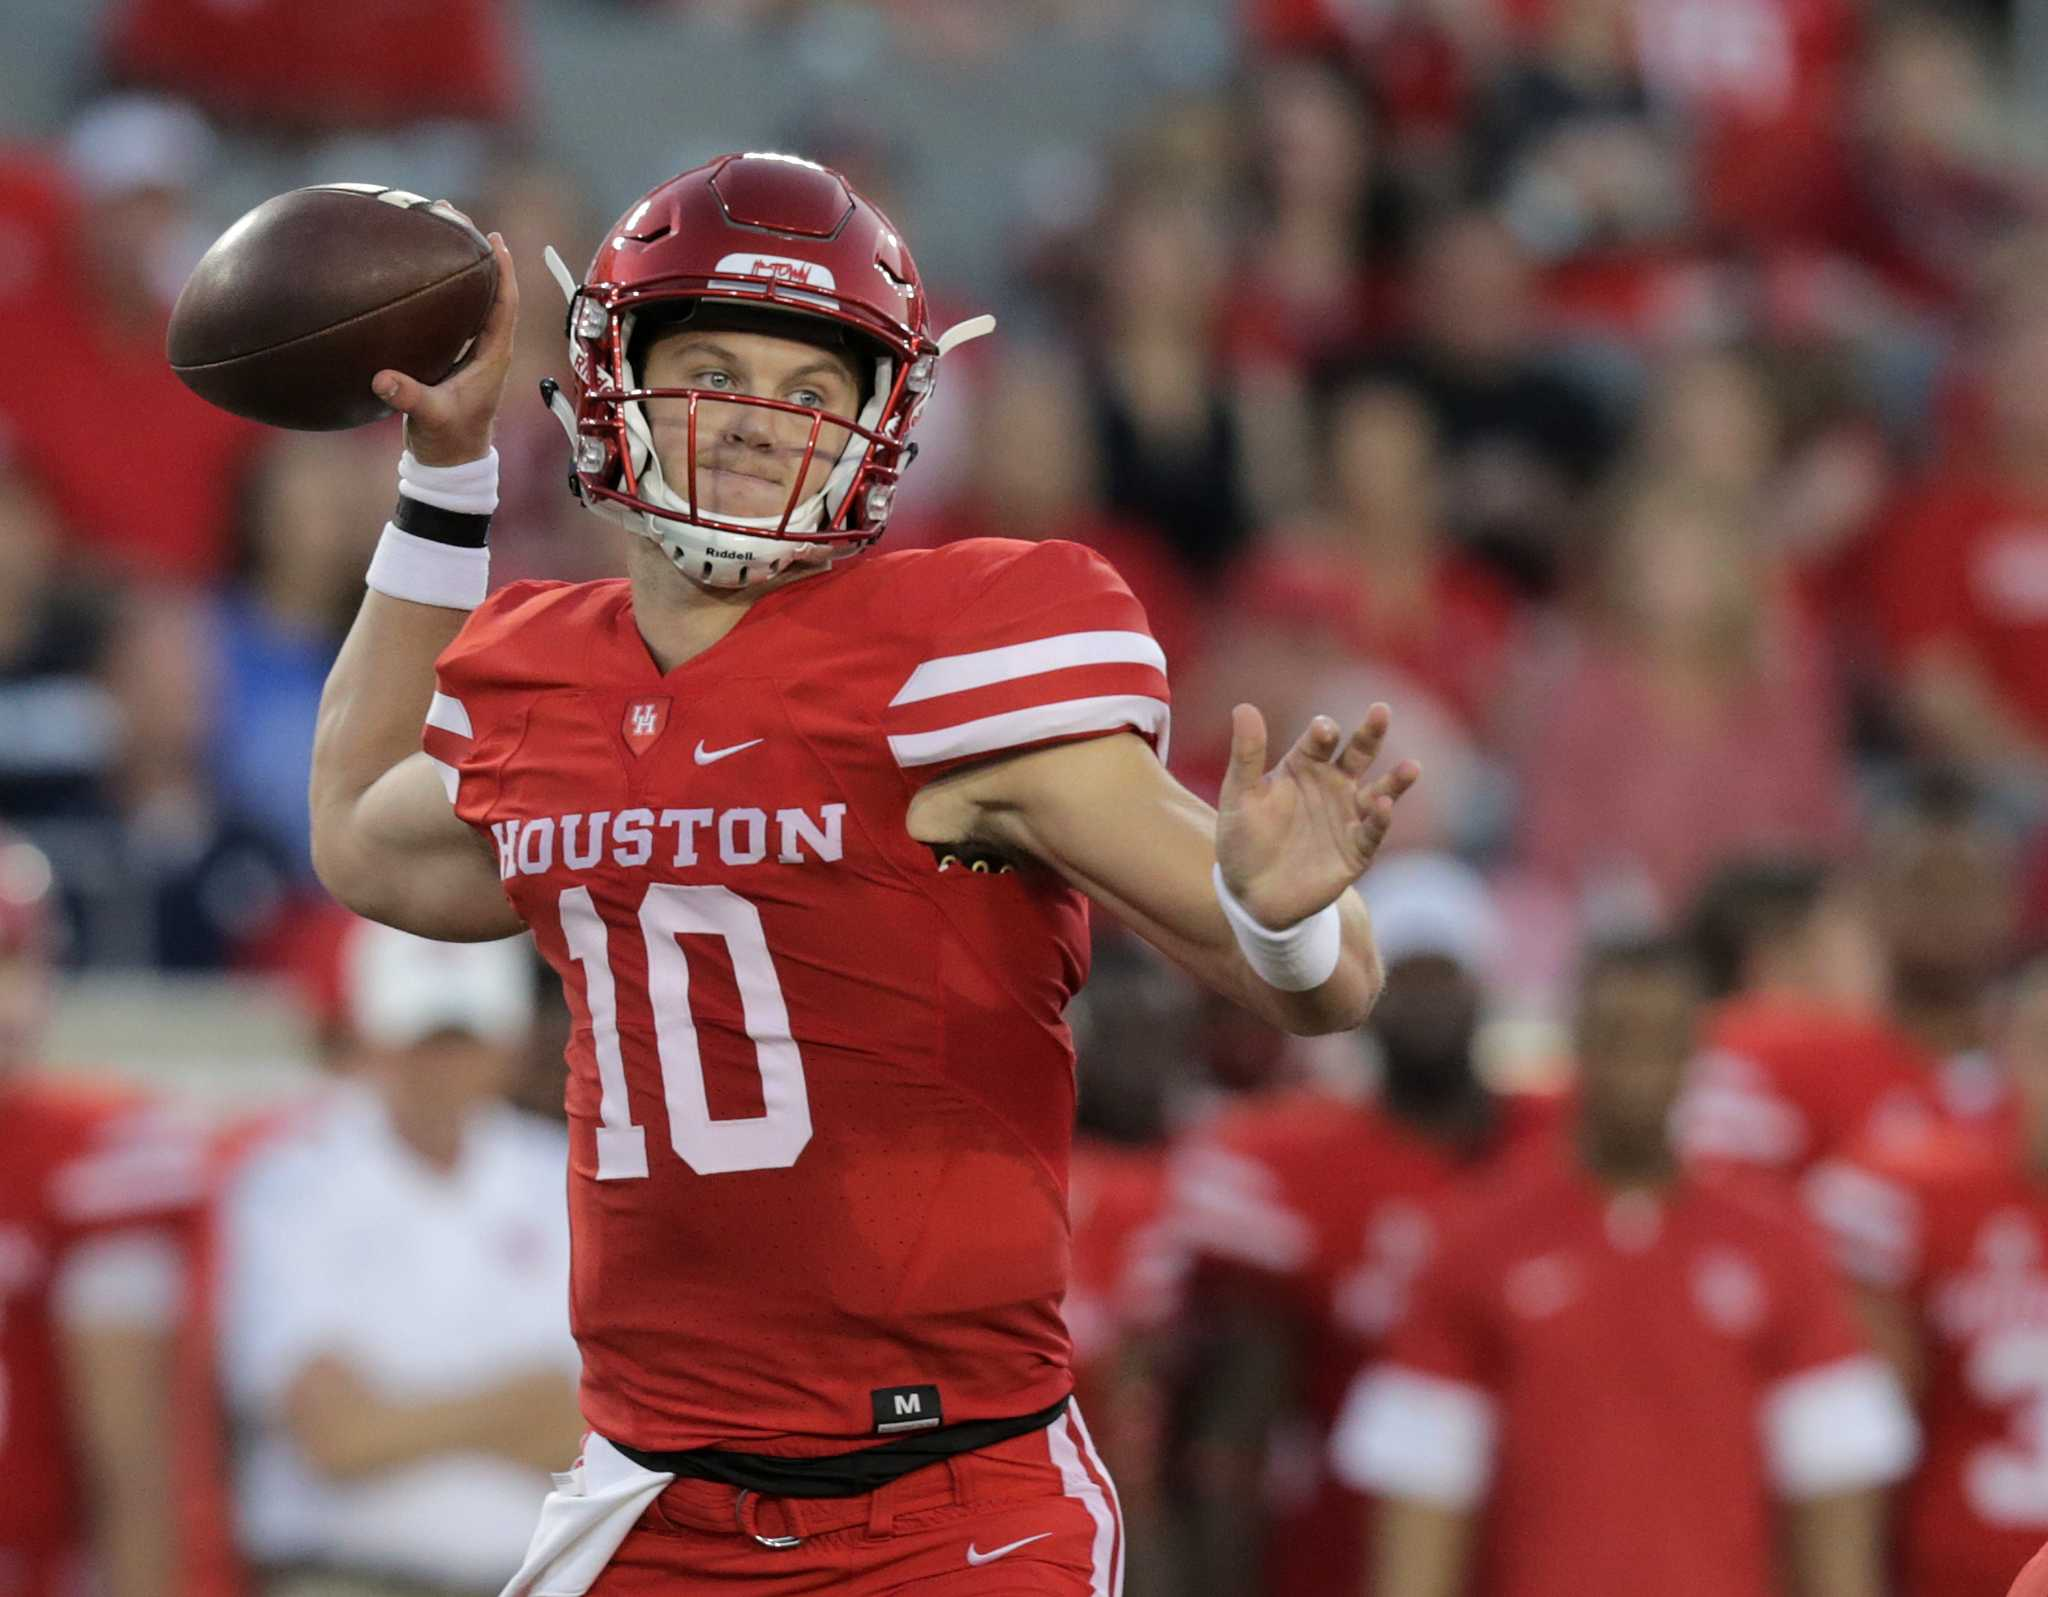 Former Uh Quarterback Kyle Allen Is Hoping To Move Up The Nfl Draft Board Houstonchronicle Com